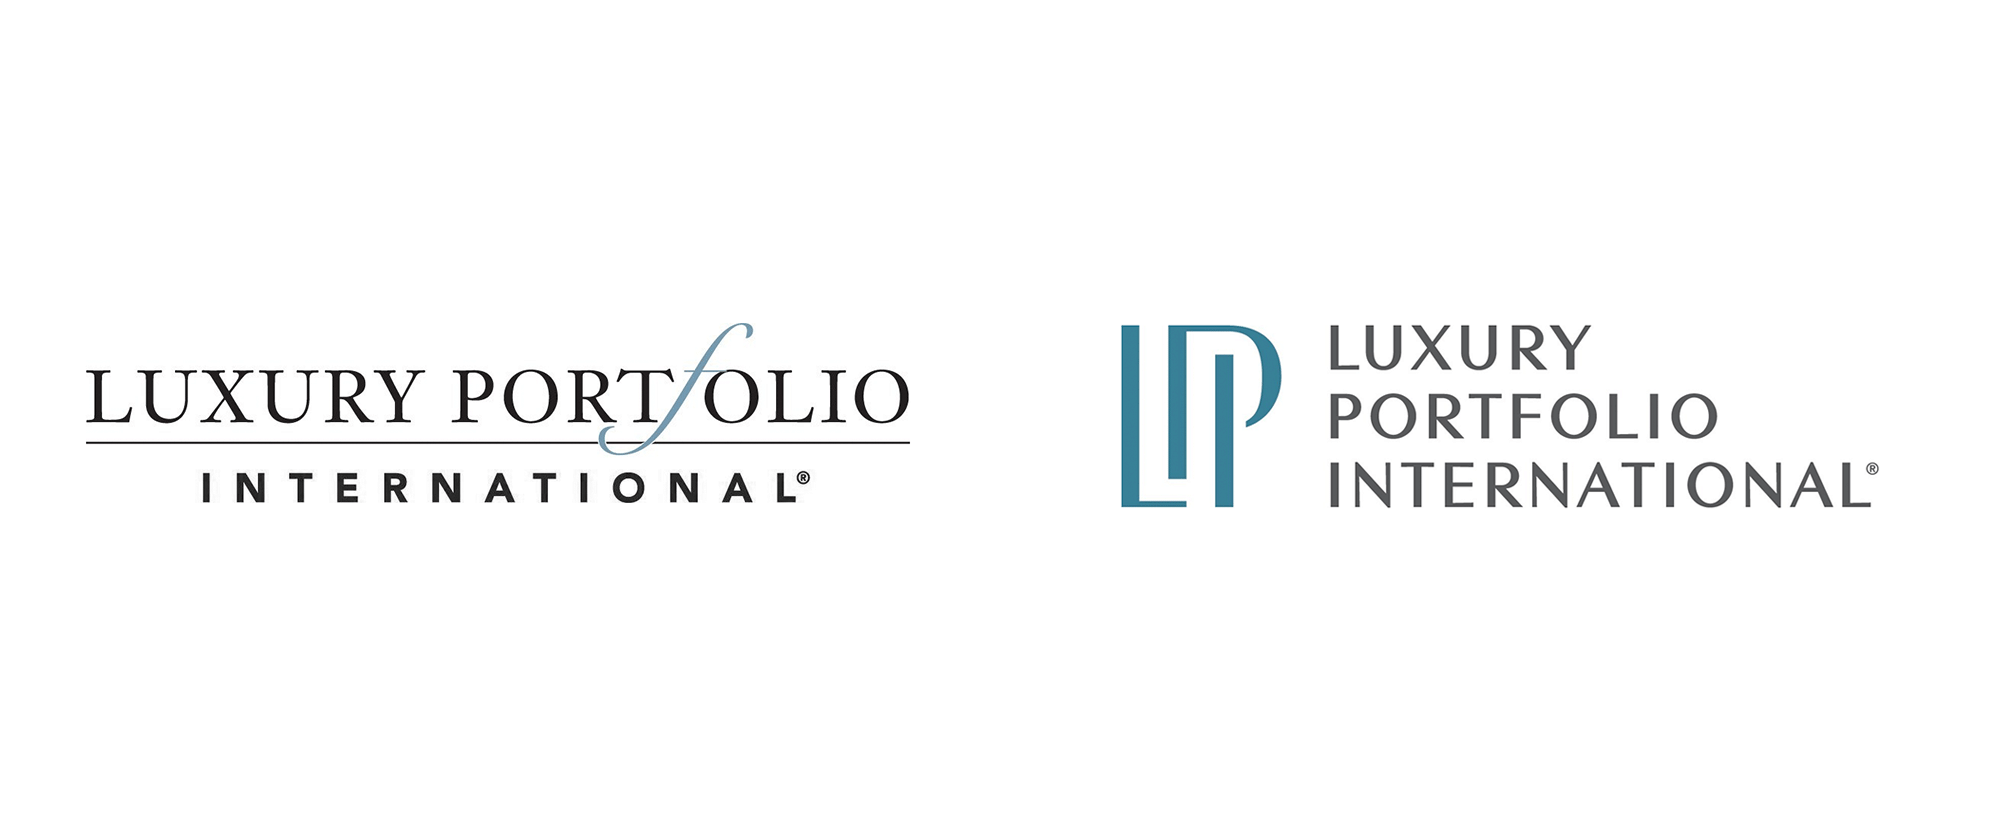 New Logo for Luxury Portfolio International by 1000watt